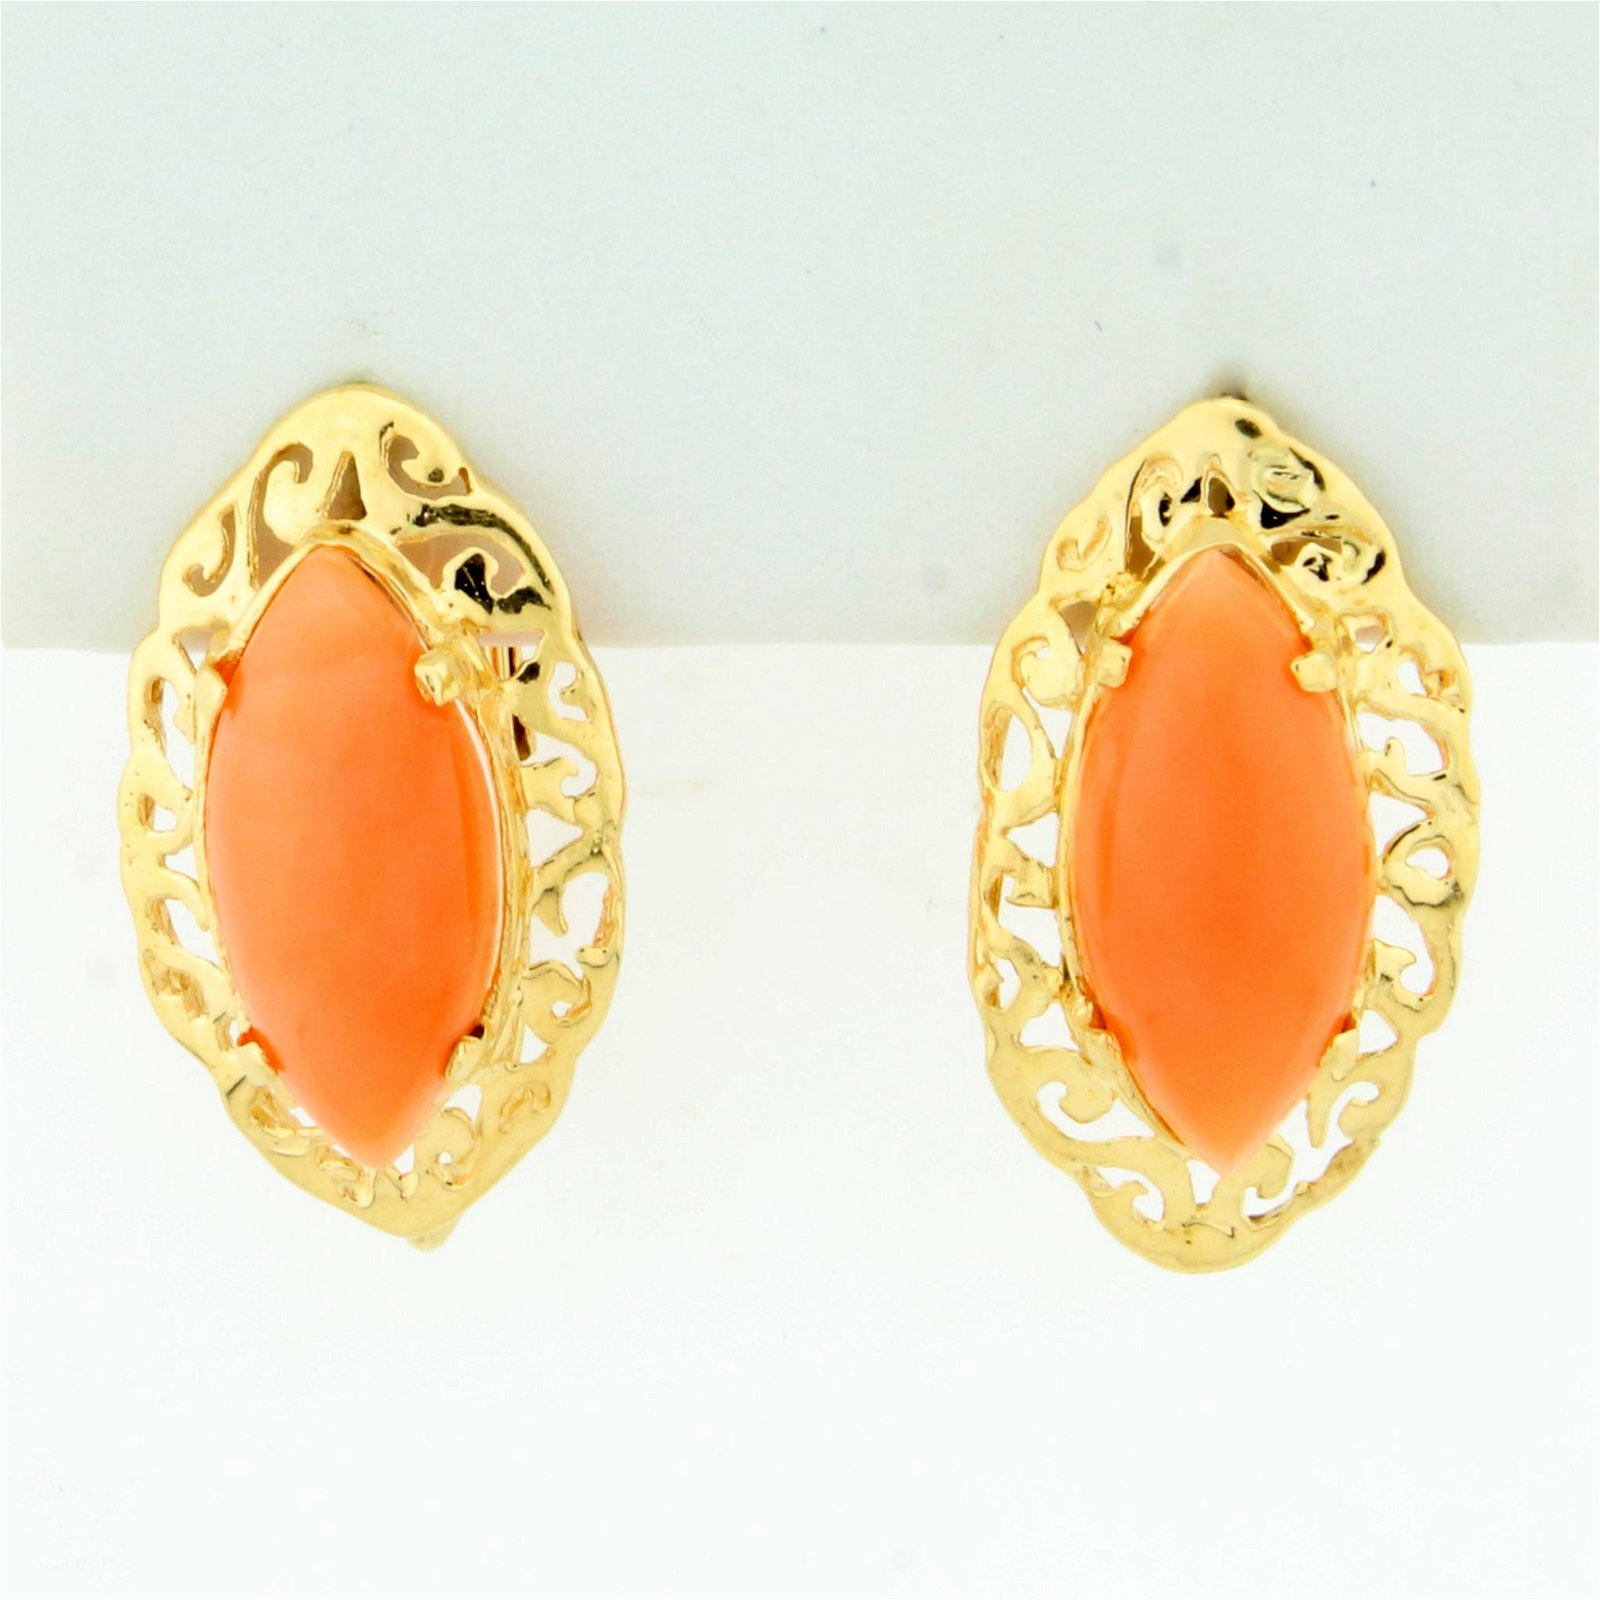 Pink Coral Earrings in 14K Yellow Gold